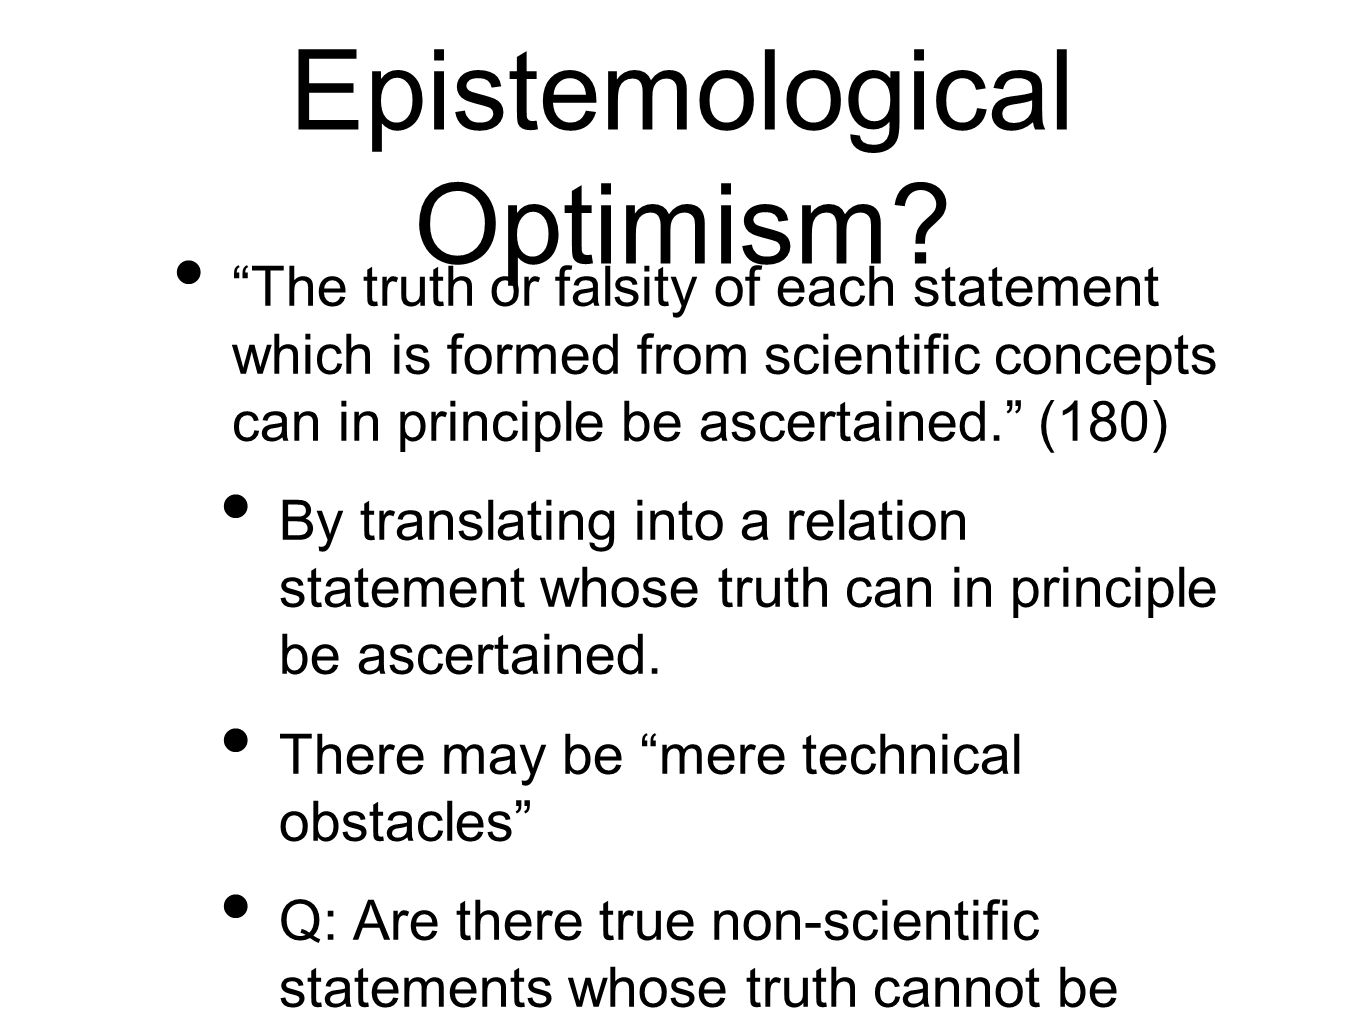 Epistemological Optimism.